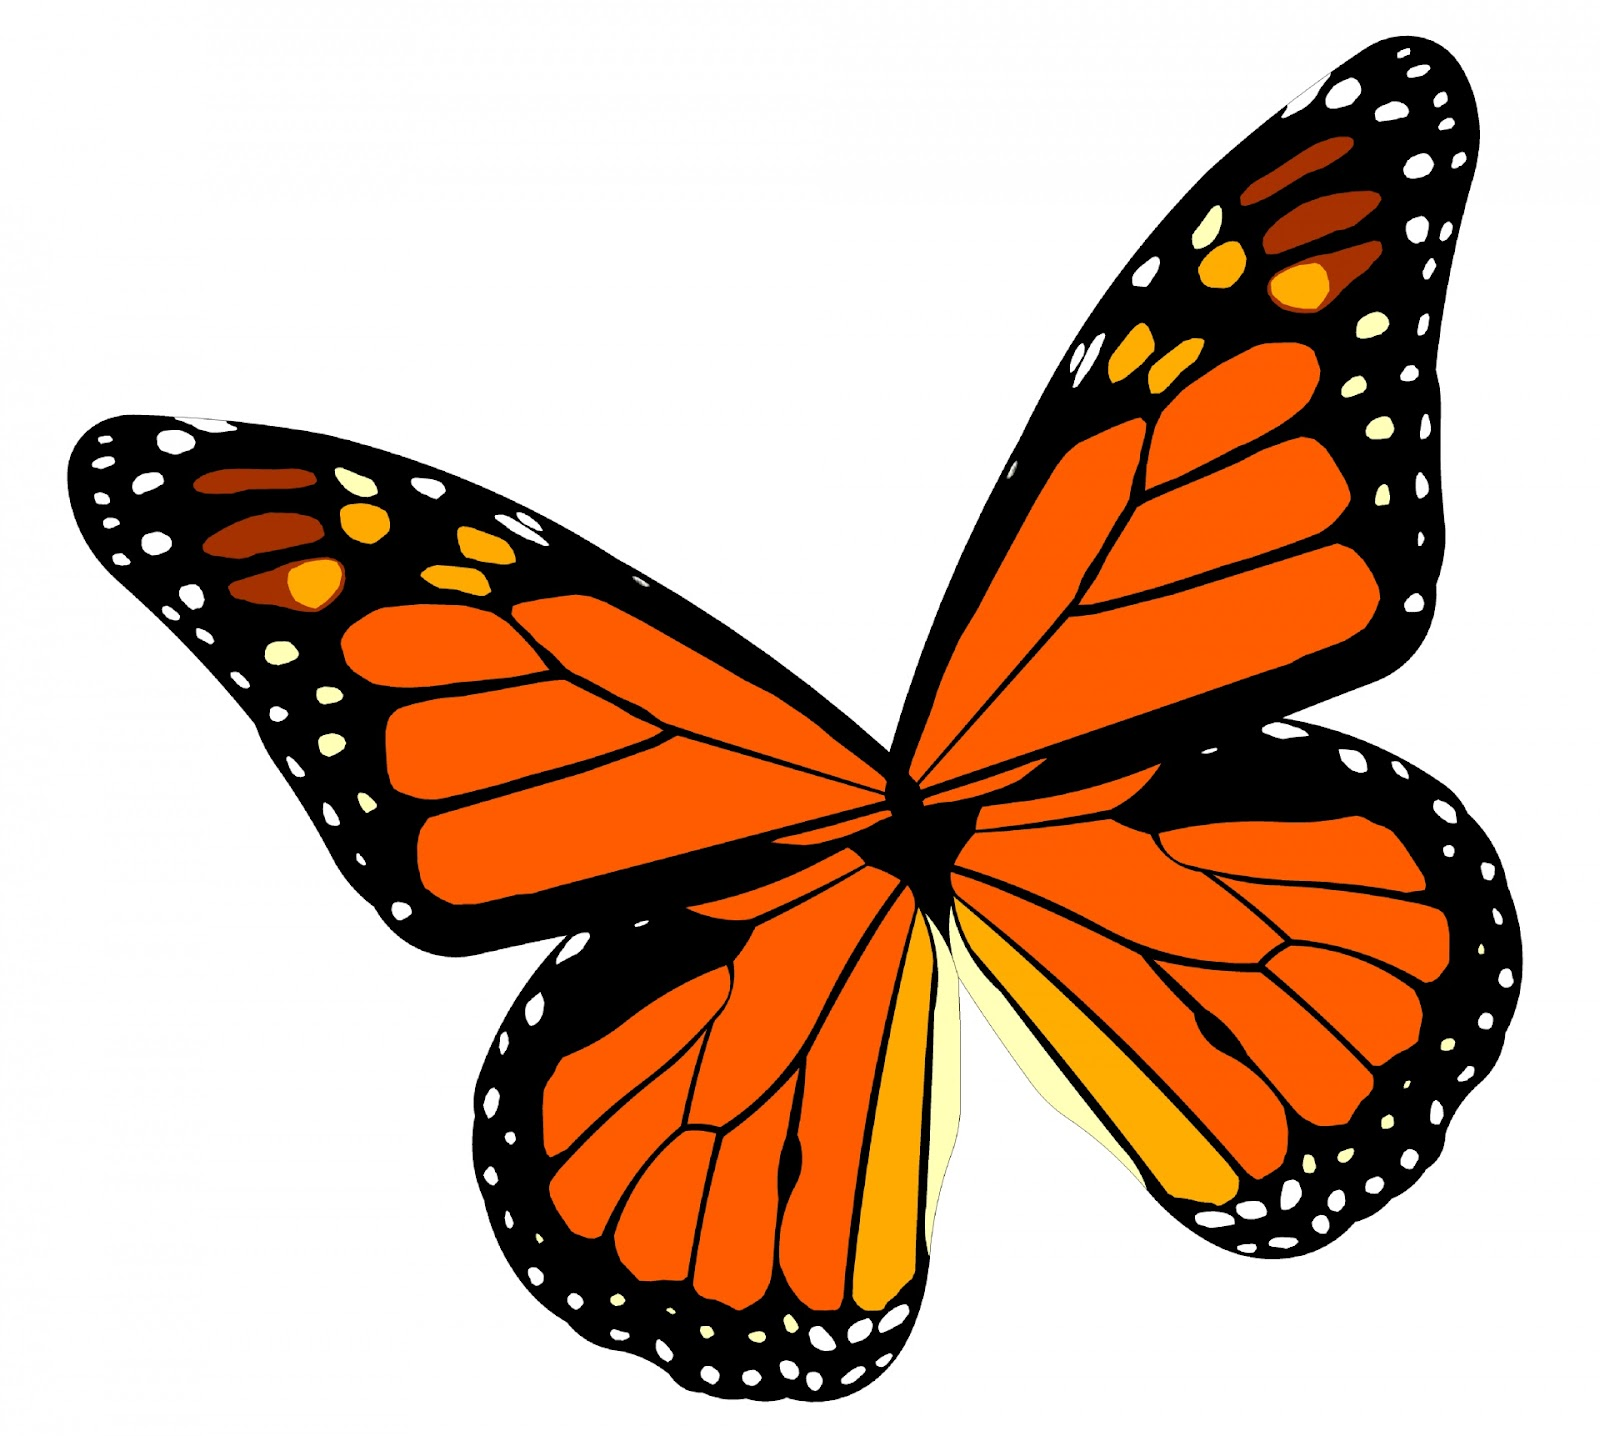 Monarch Butterfly Free Stock Photo - Public Domain Pictures